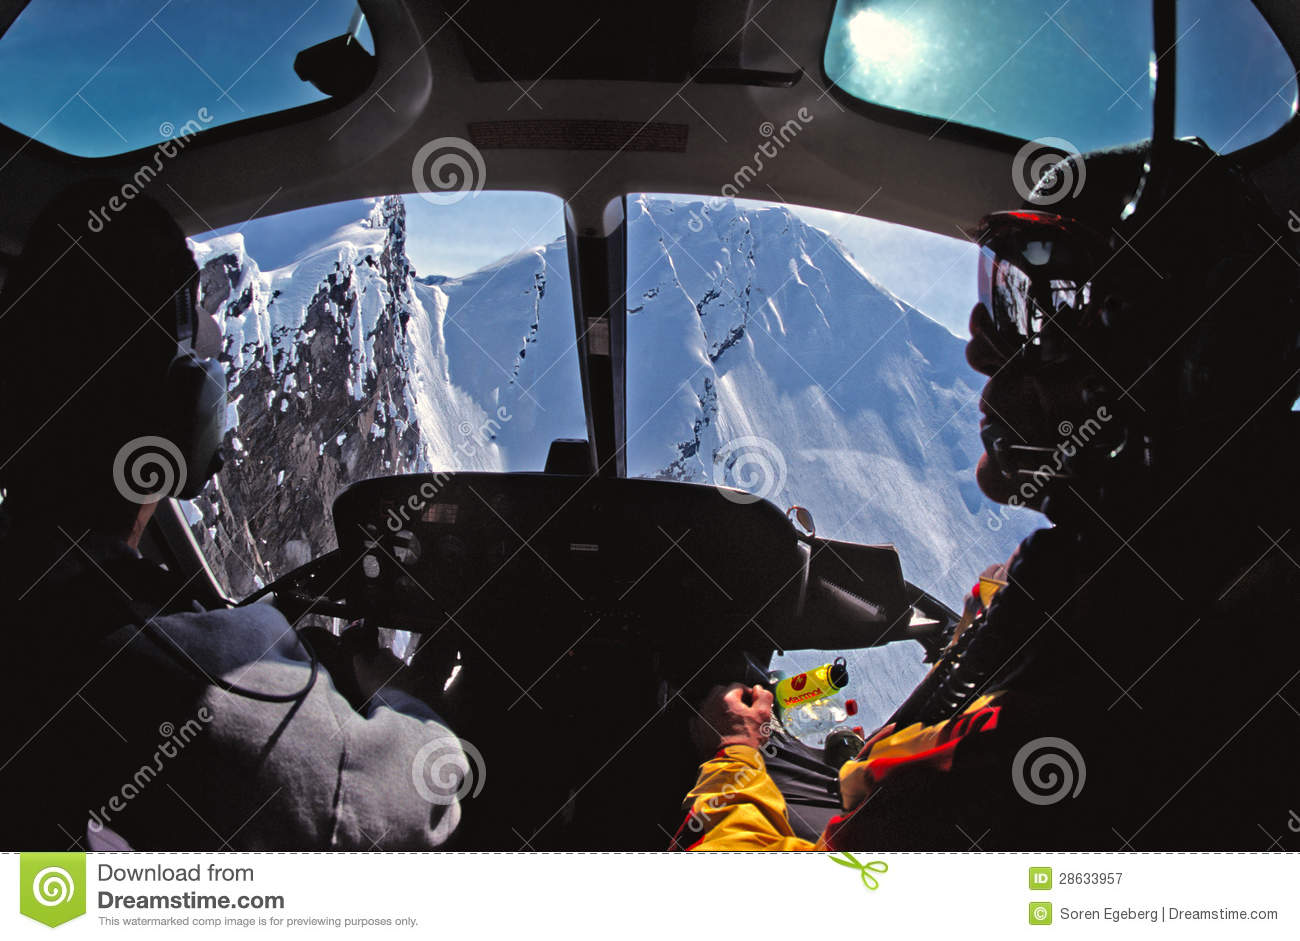 Helicopter Cockpit View Of The Chugach Mountains Of Alaska.